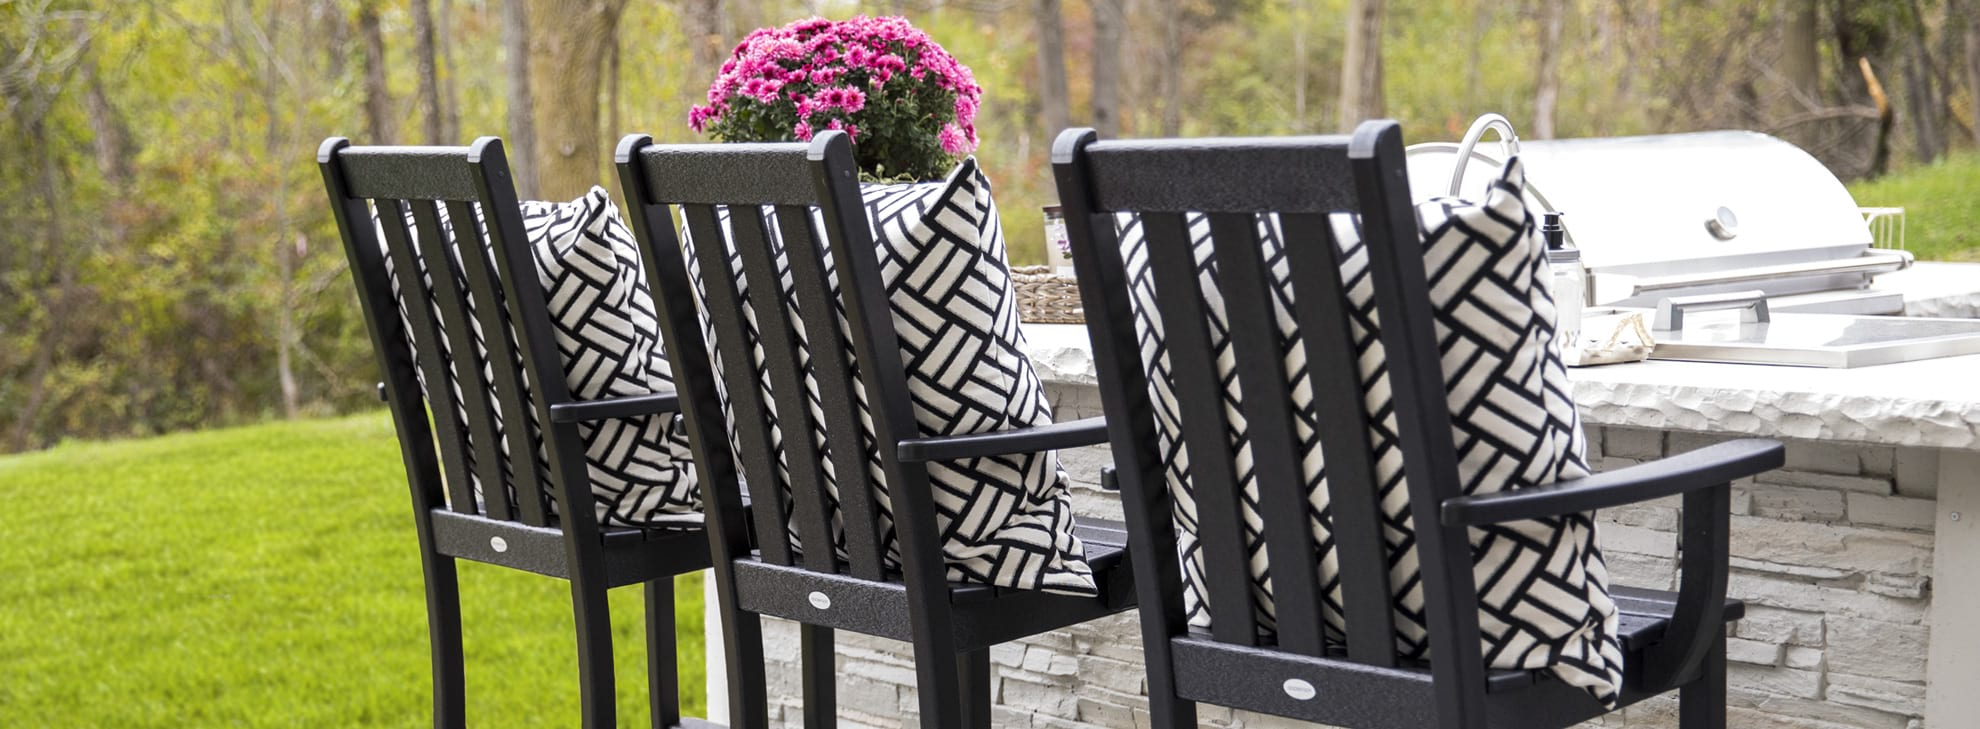 Vineyard Bar Arm Chairs in Black